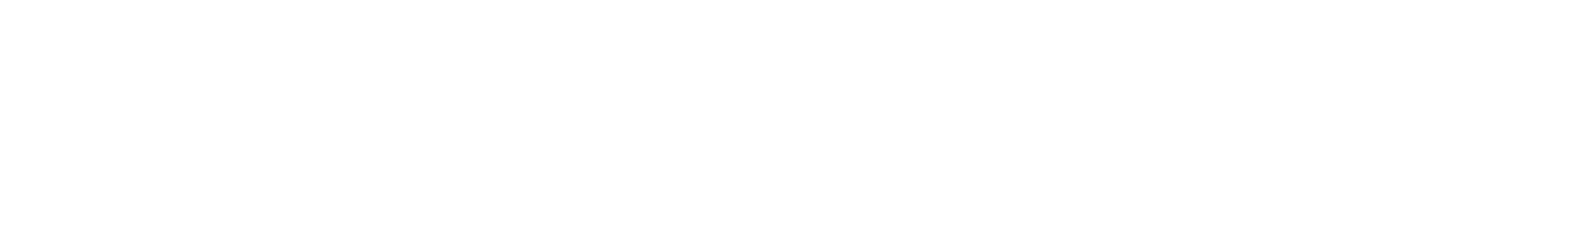 Action Reaction Productions